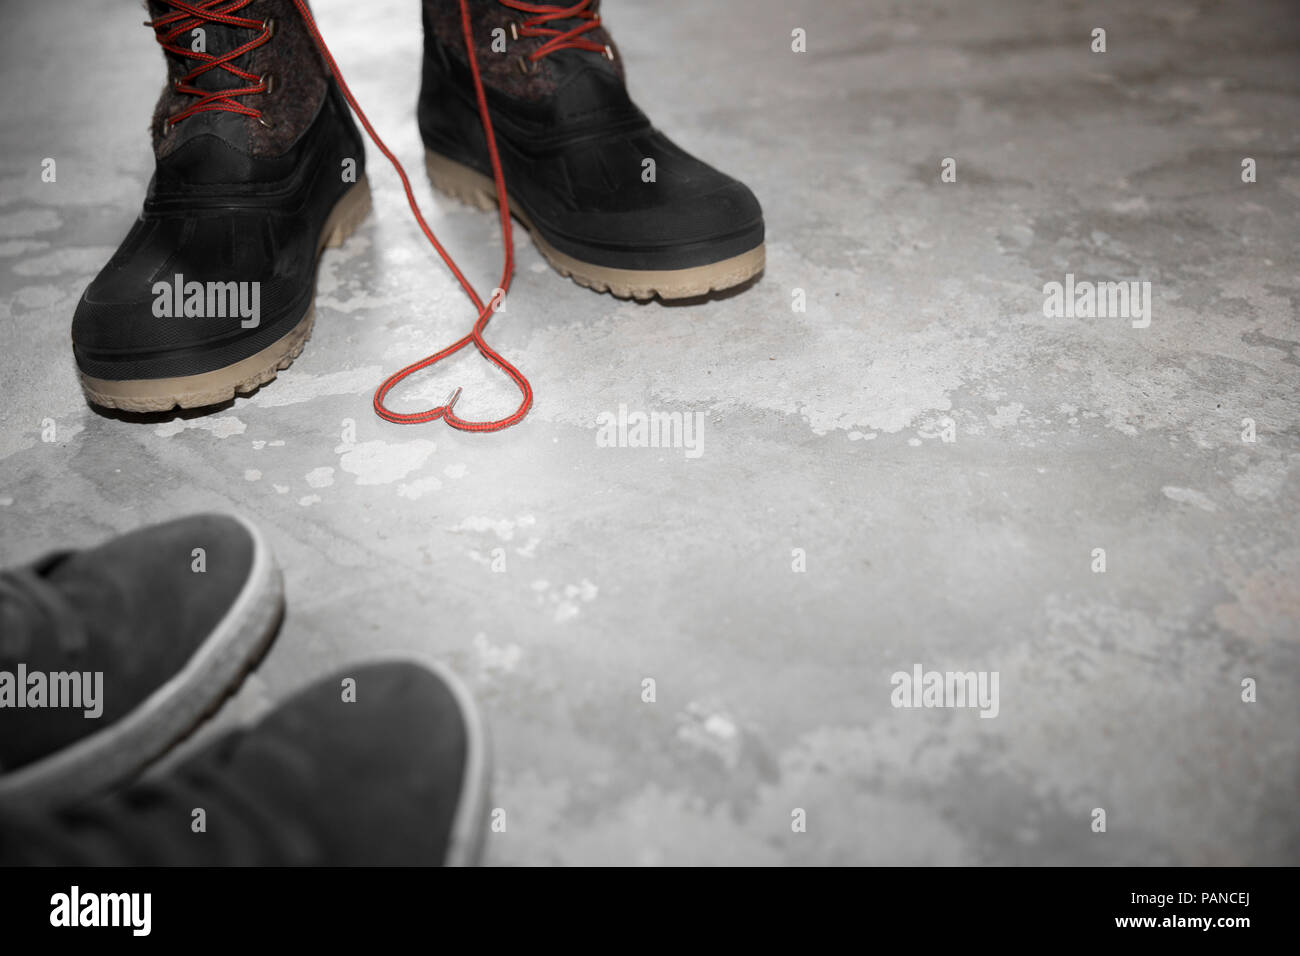 Two pair of shoes, symbol love - Stock Image